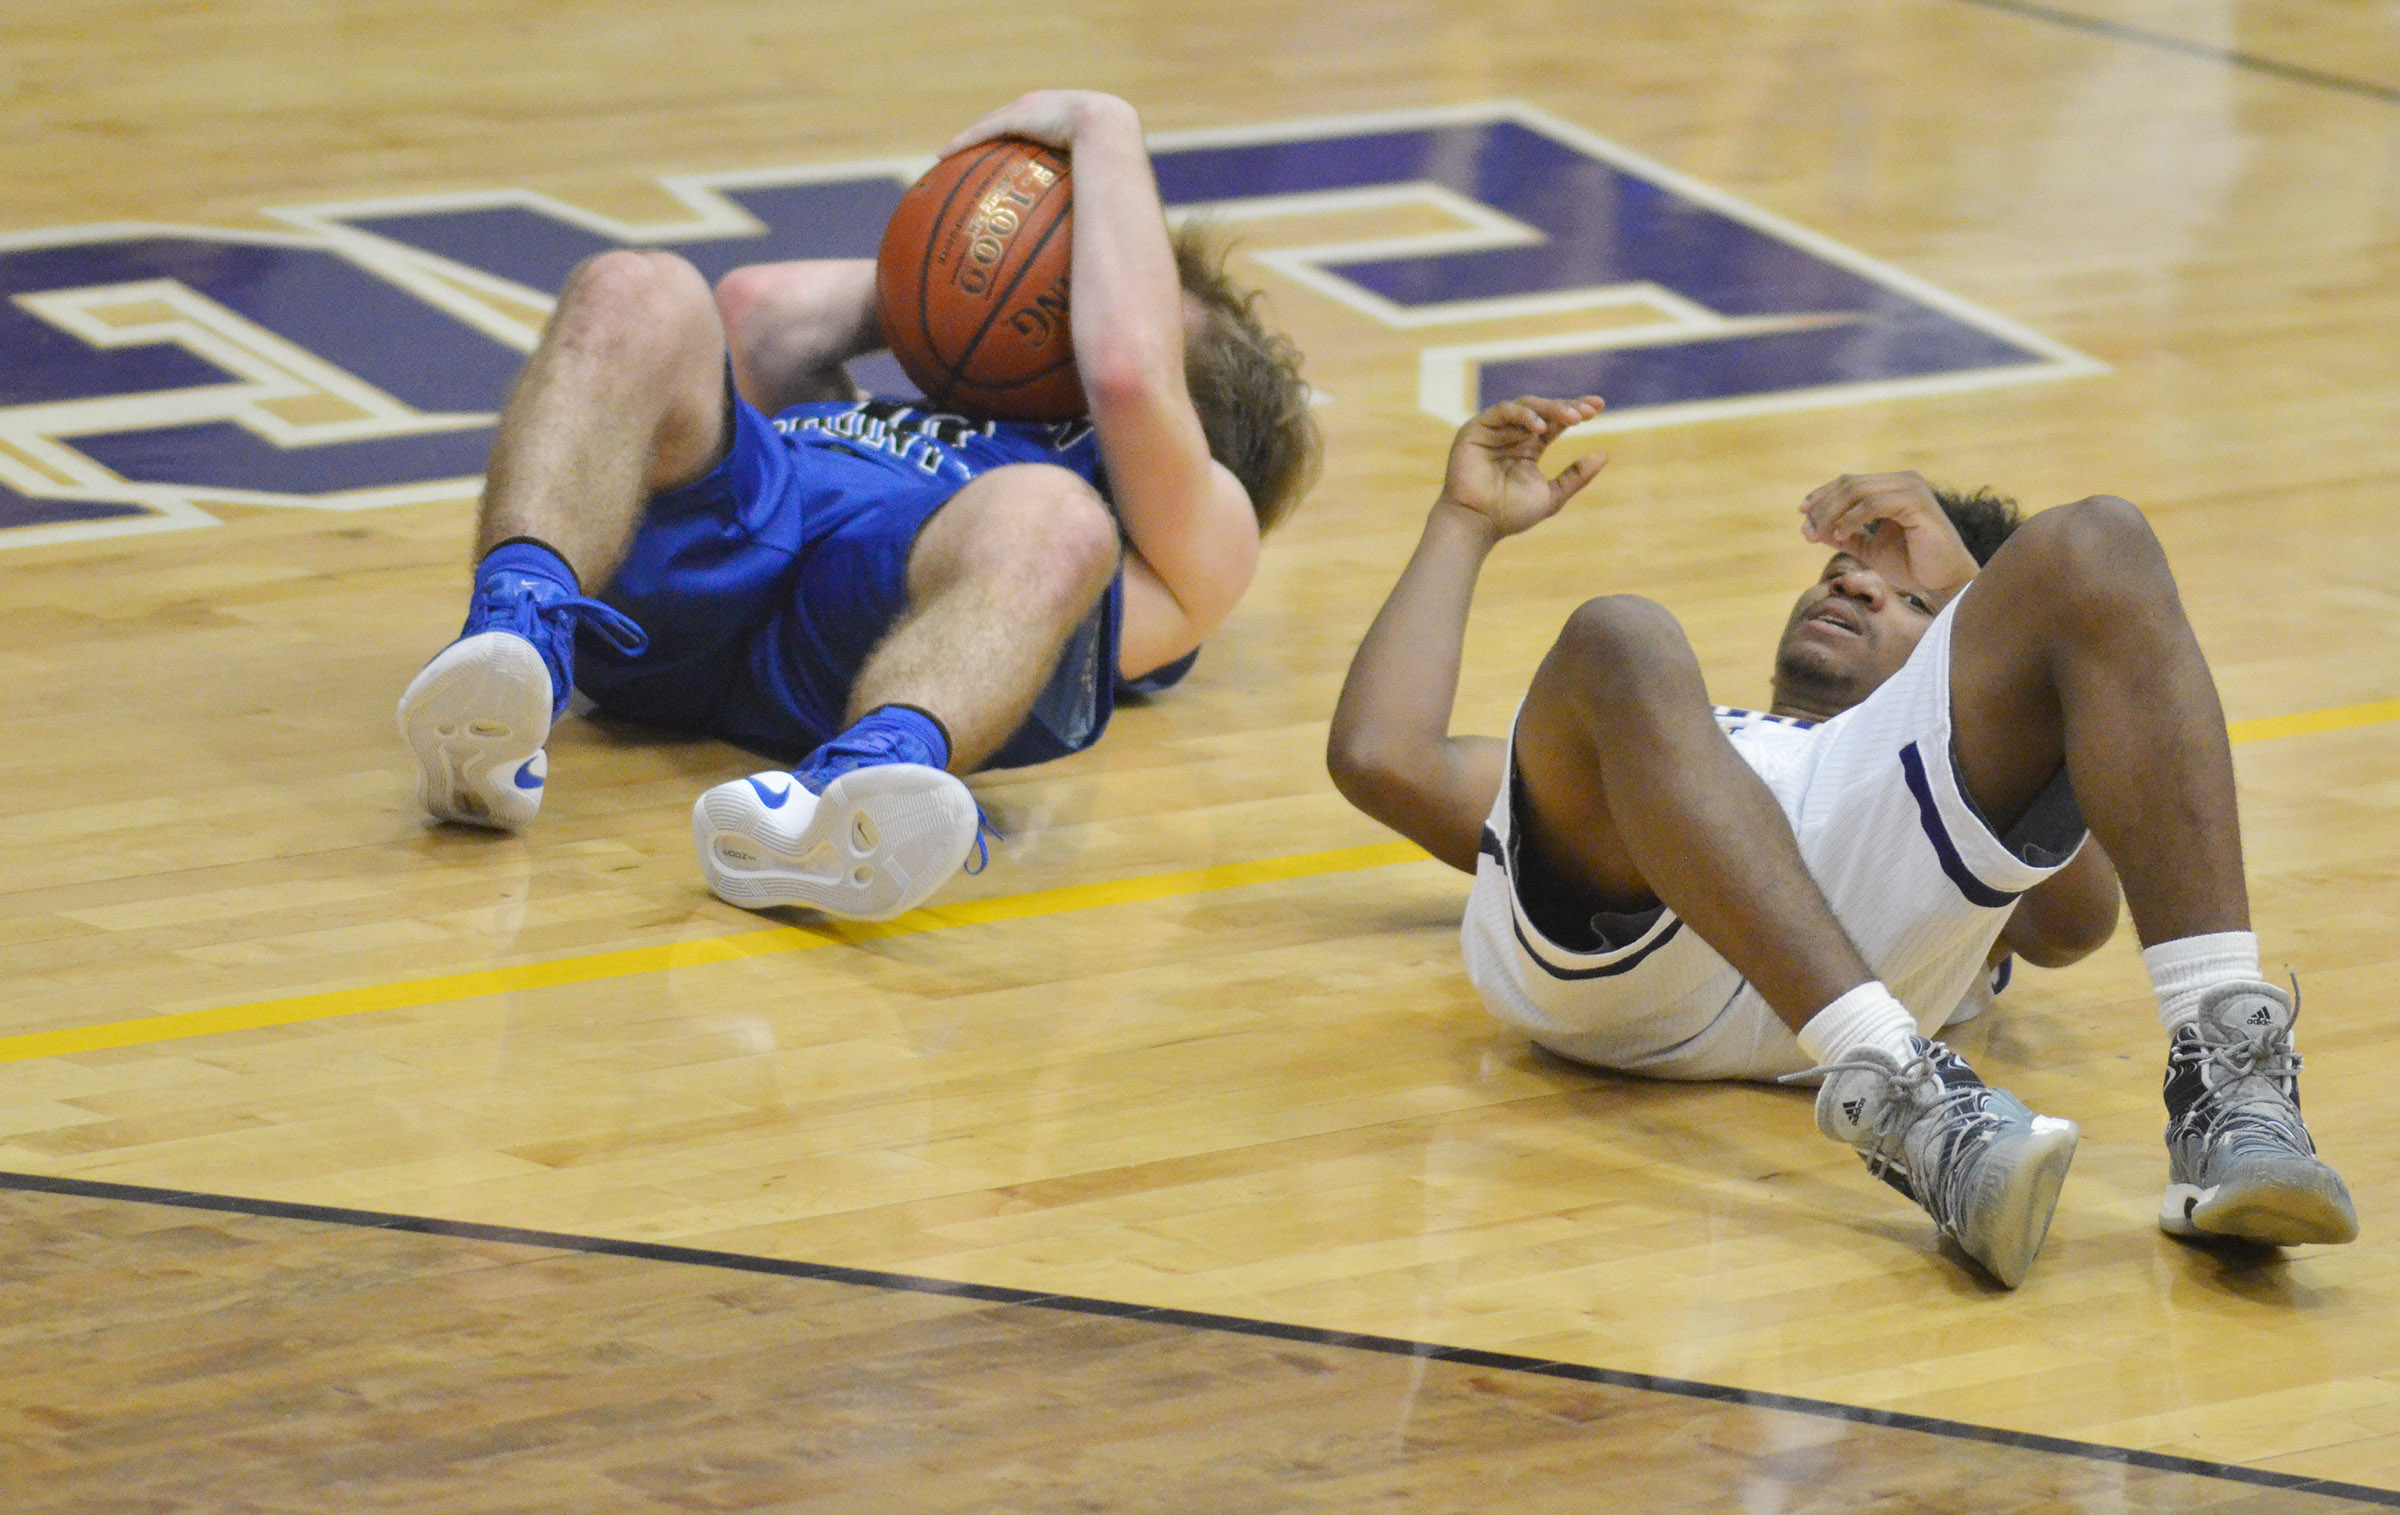 CHS junior Tyrion Taylor lands on the floor after battling with a Clinton County defender for the ball.